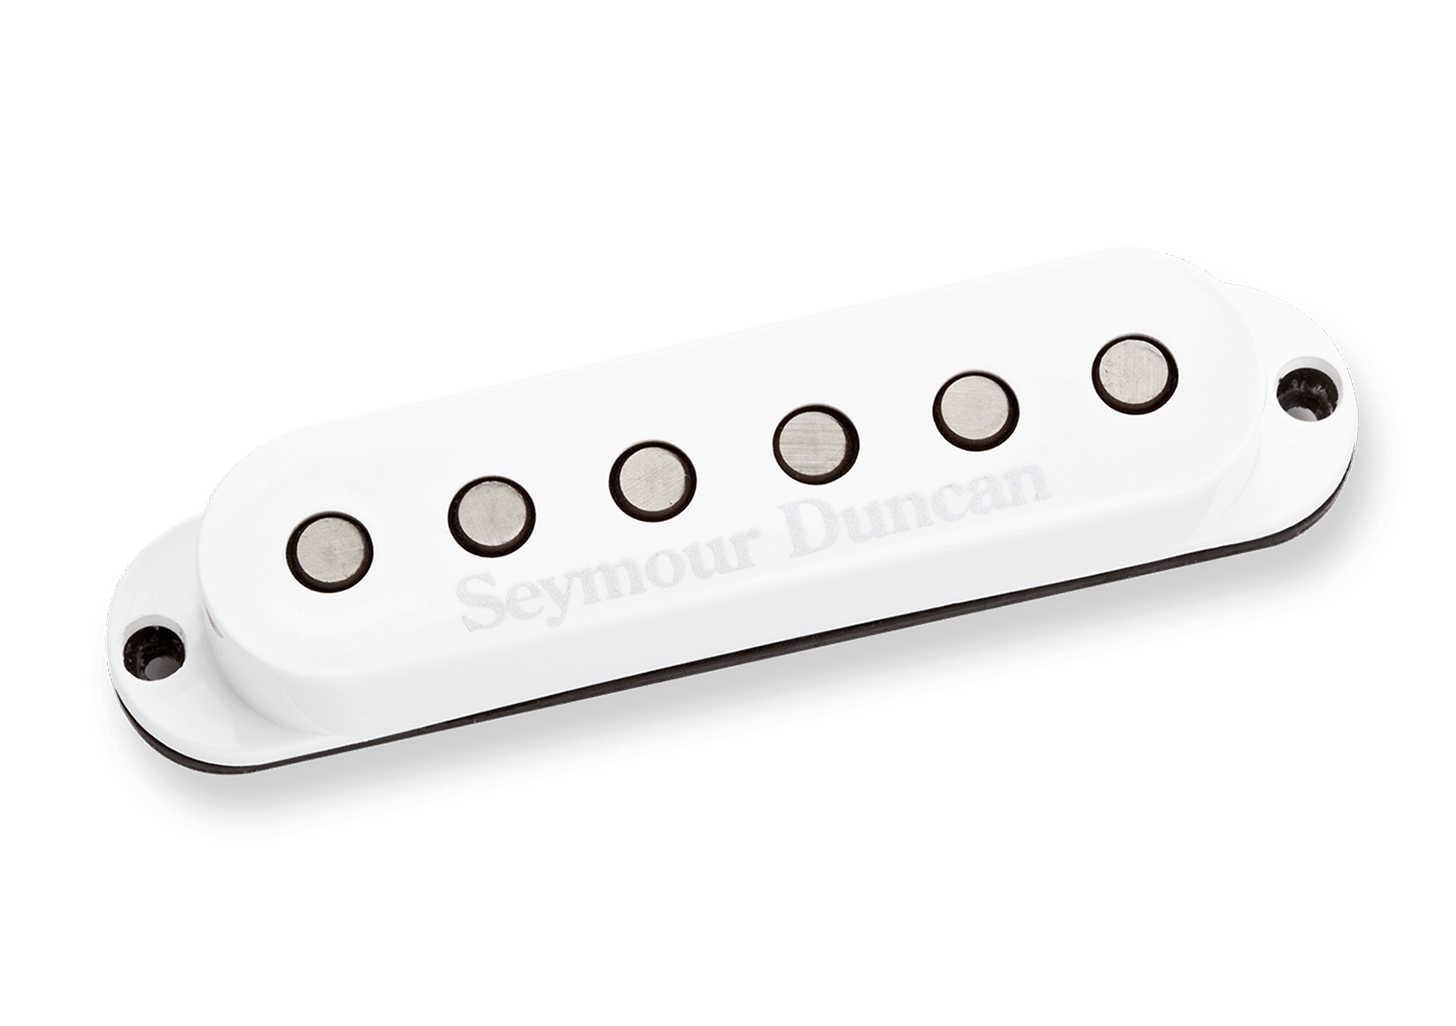 High Output Strat Pickup 11202 01 RwRp